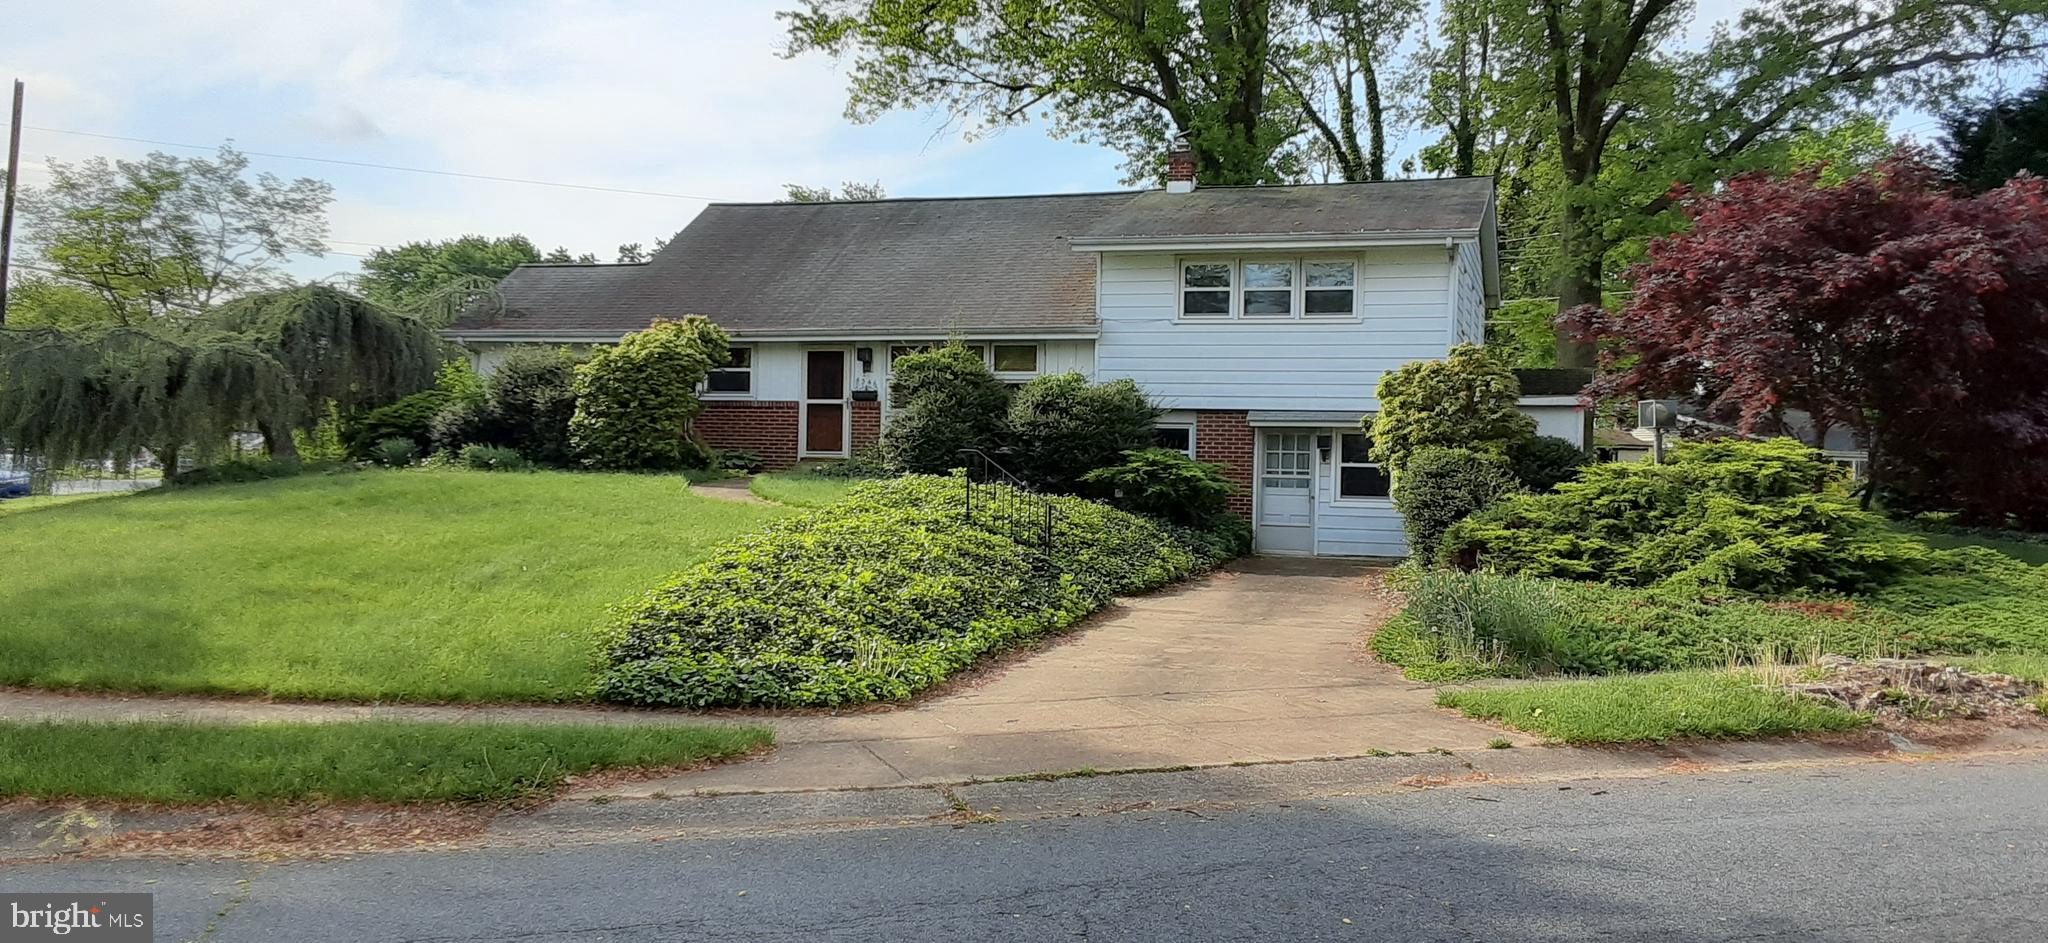 Investor Alert!  Come look at this great opportunity in the Pike Creek area. It won't last long! 250